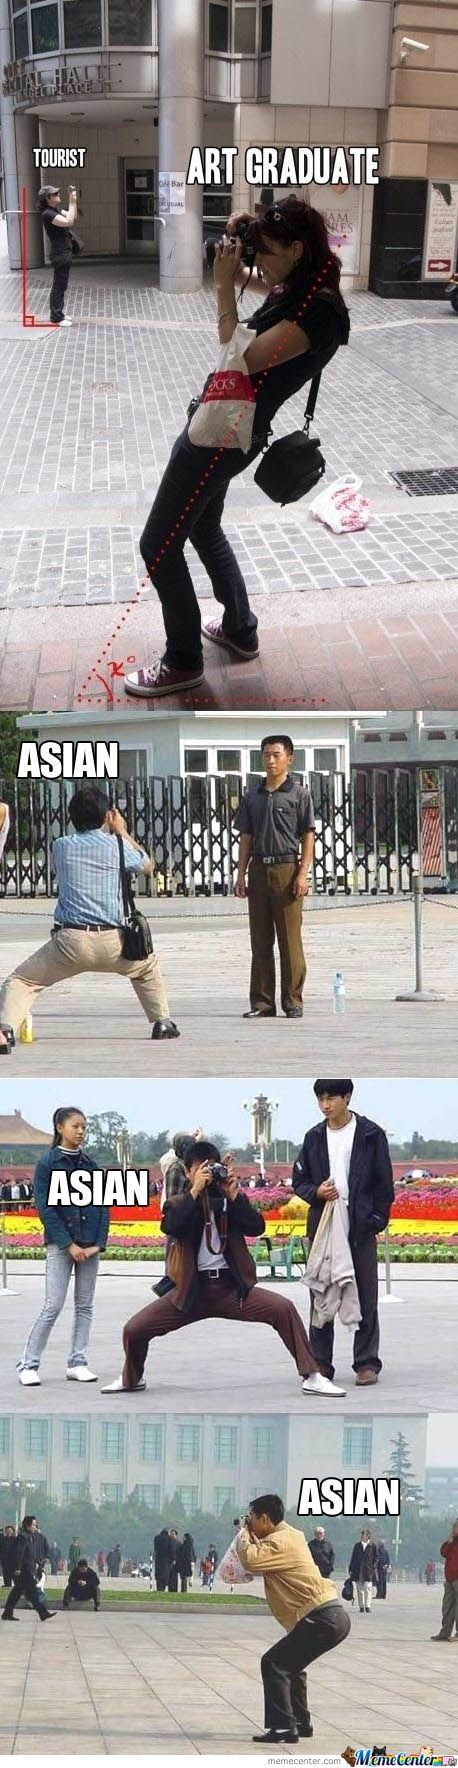 asians are the pros